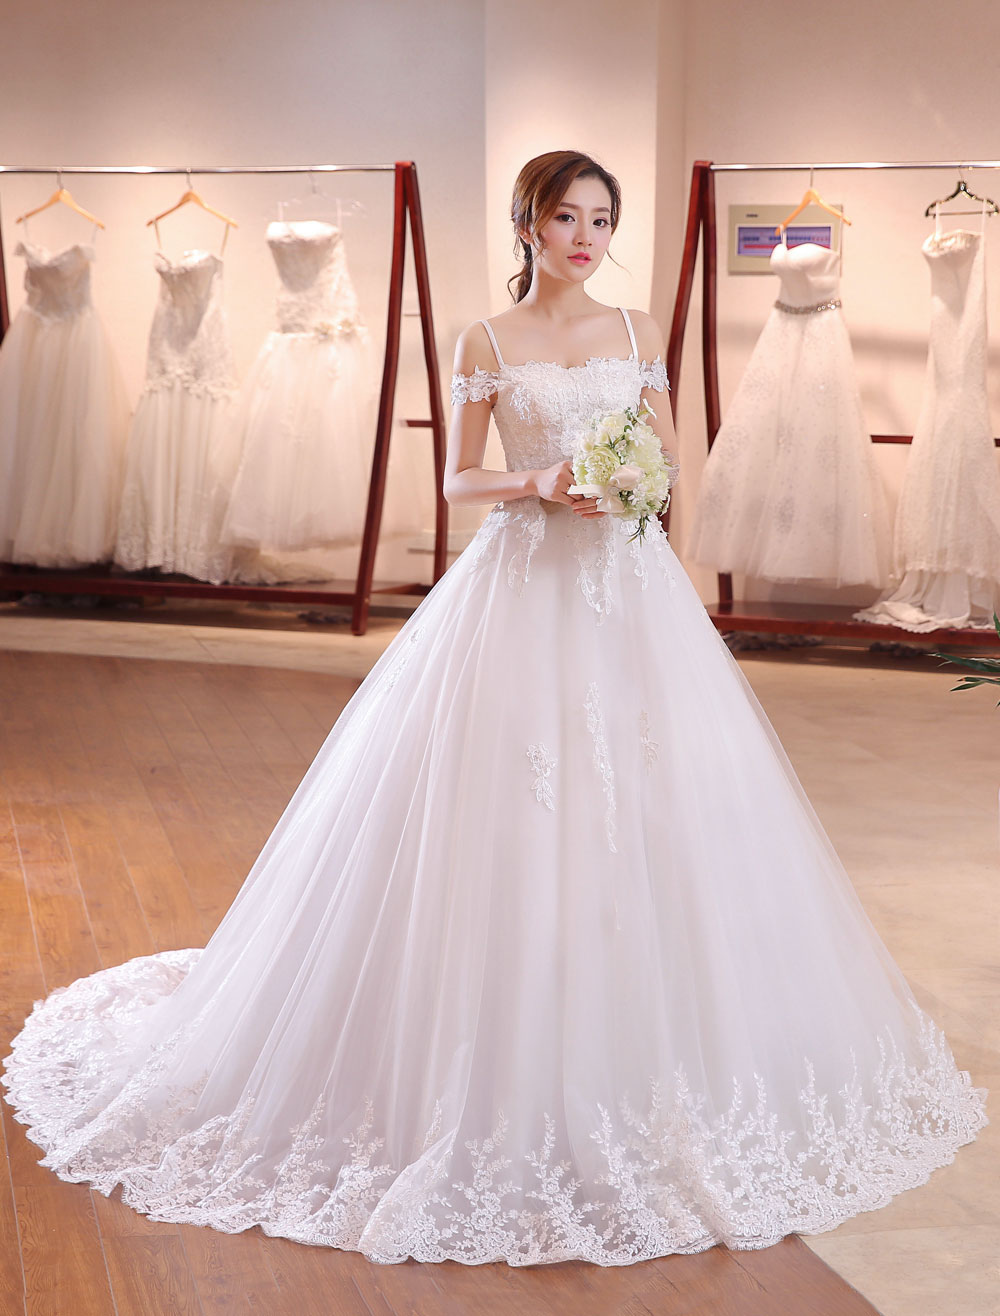 Buy Princess Wedding Dresses Off The Shoulder Bridal Dress Straps Lace Applique Beading Wedding Gown With Long Train for $115.49 in Milanoo store